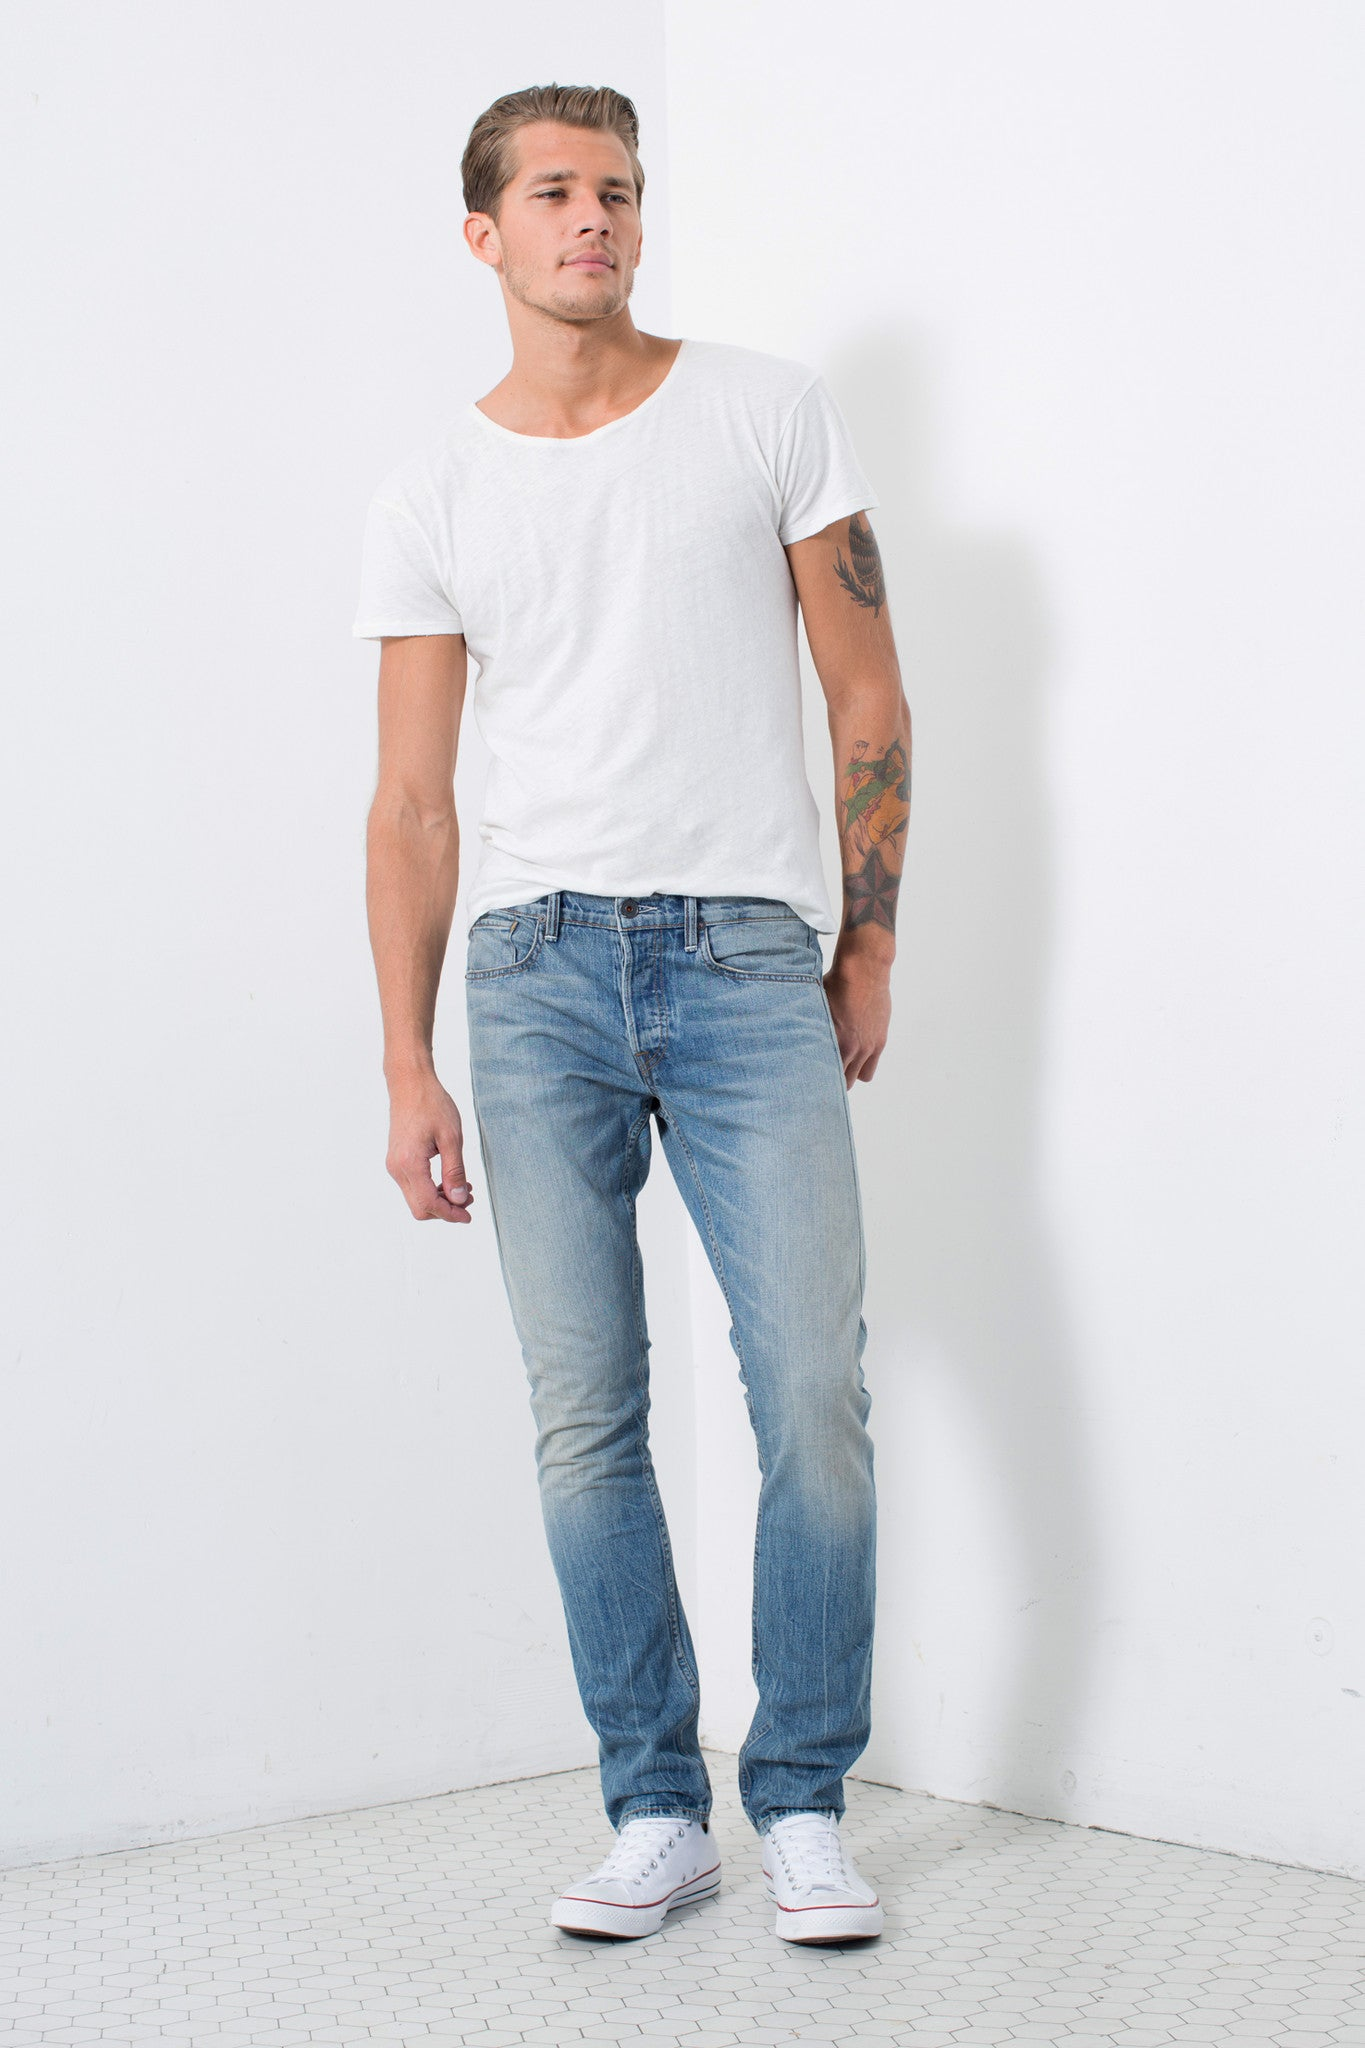 SKINNY FIT in DUSTY | MADE TO ORDER